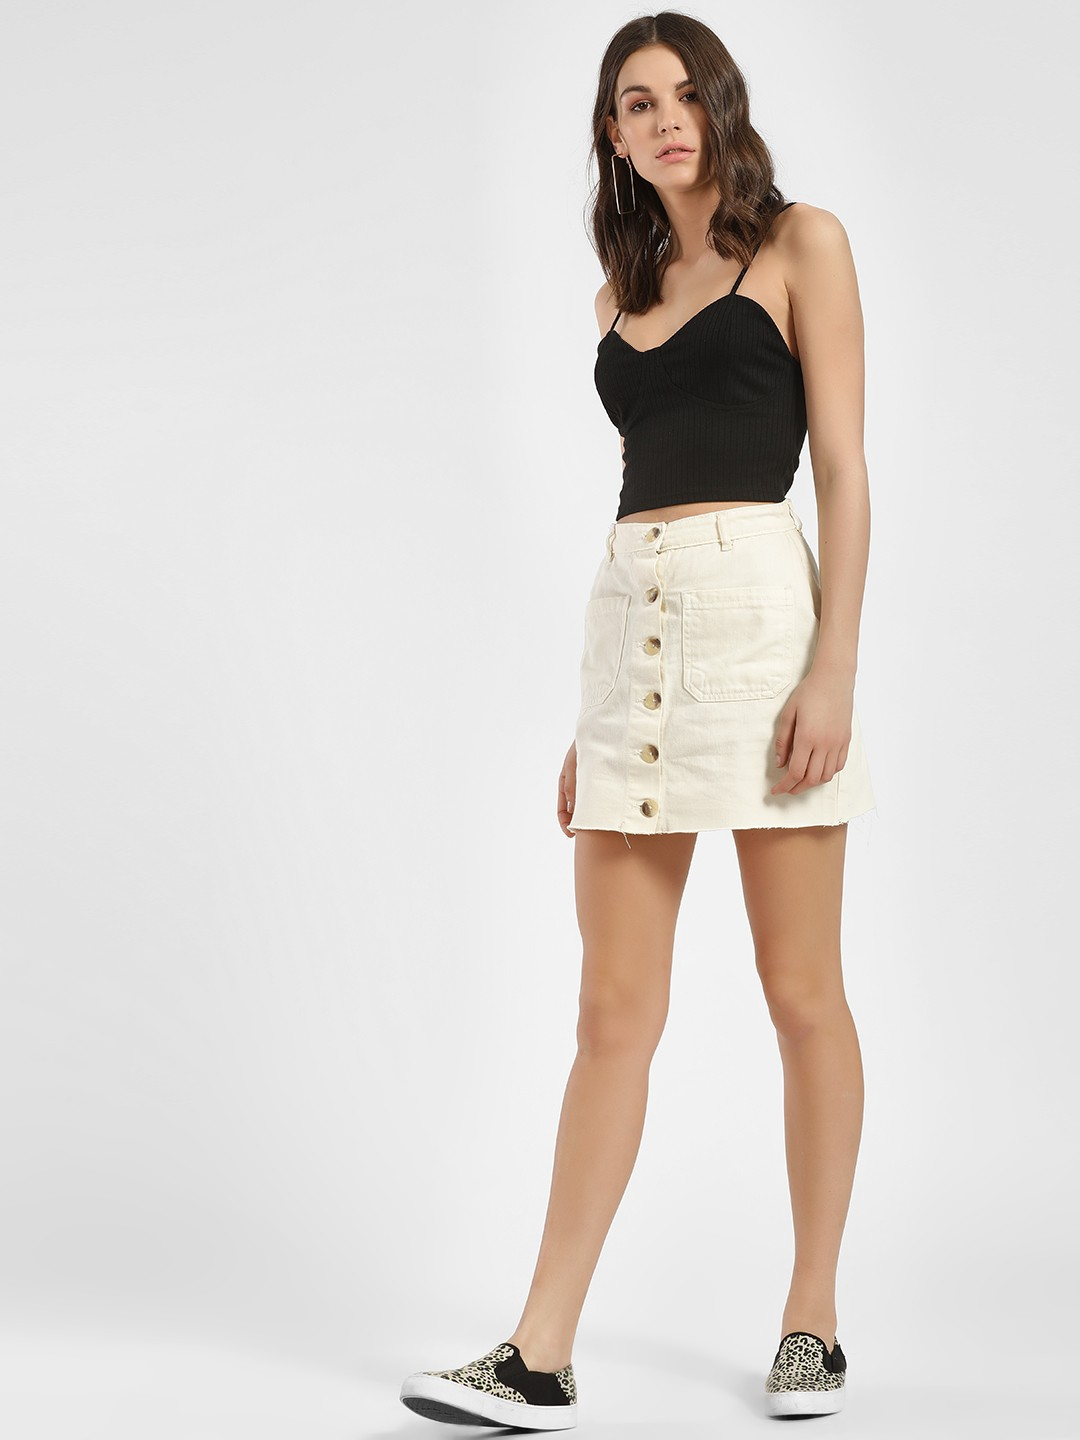 K Denim Off White KOOVS Horn Button Mini Denim Skirt 1